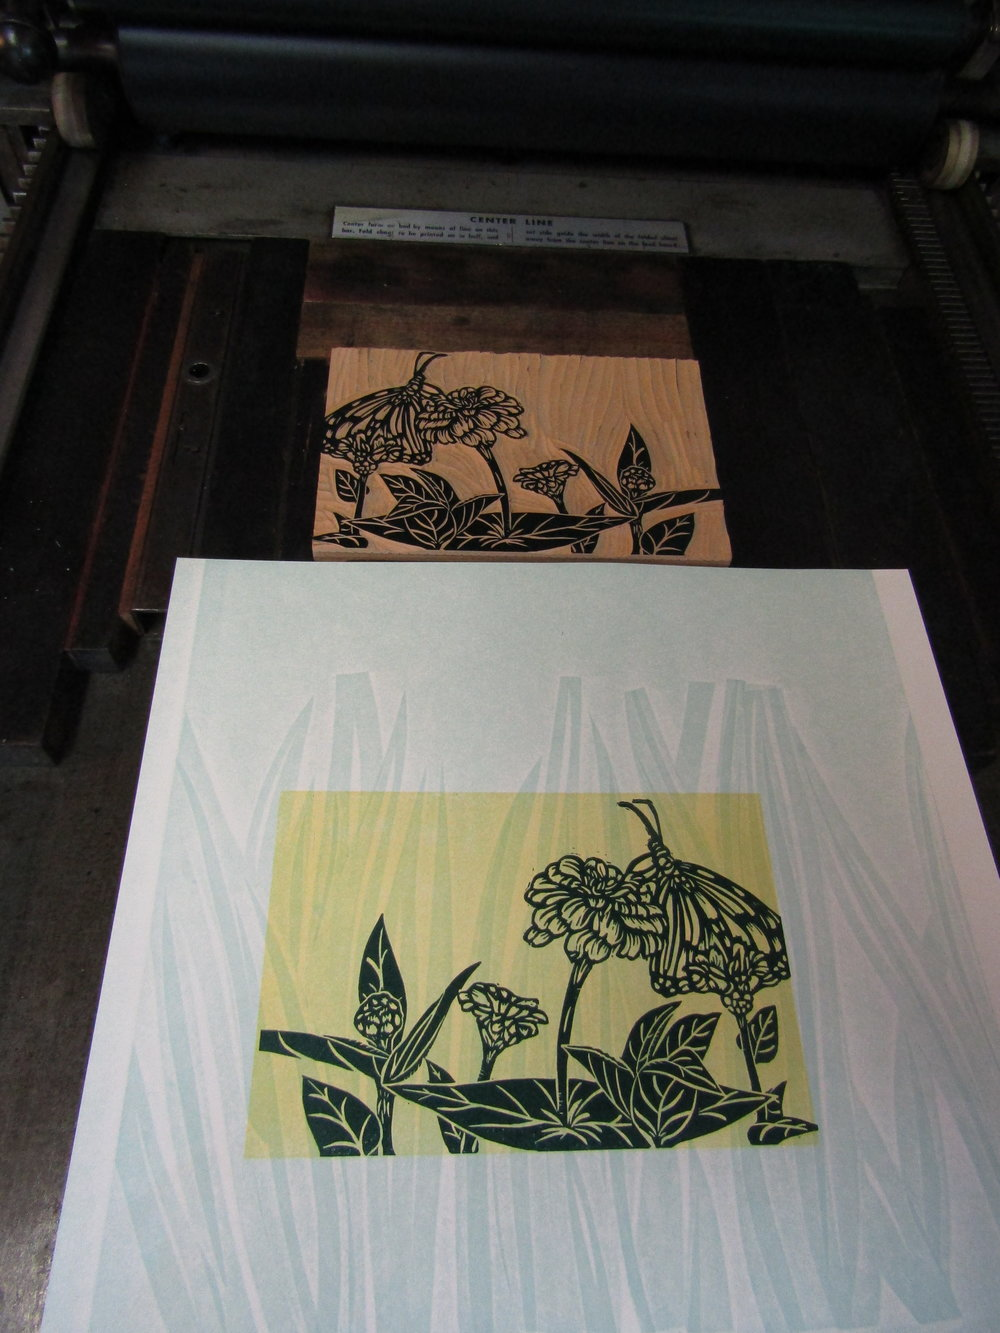 Print of a monarch butterfly in zinnias.